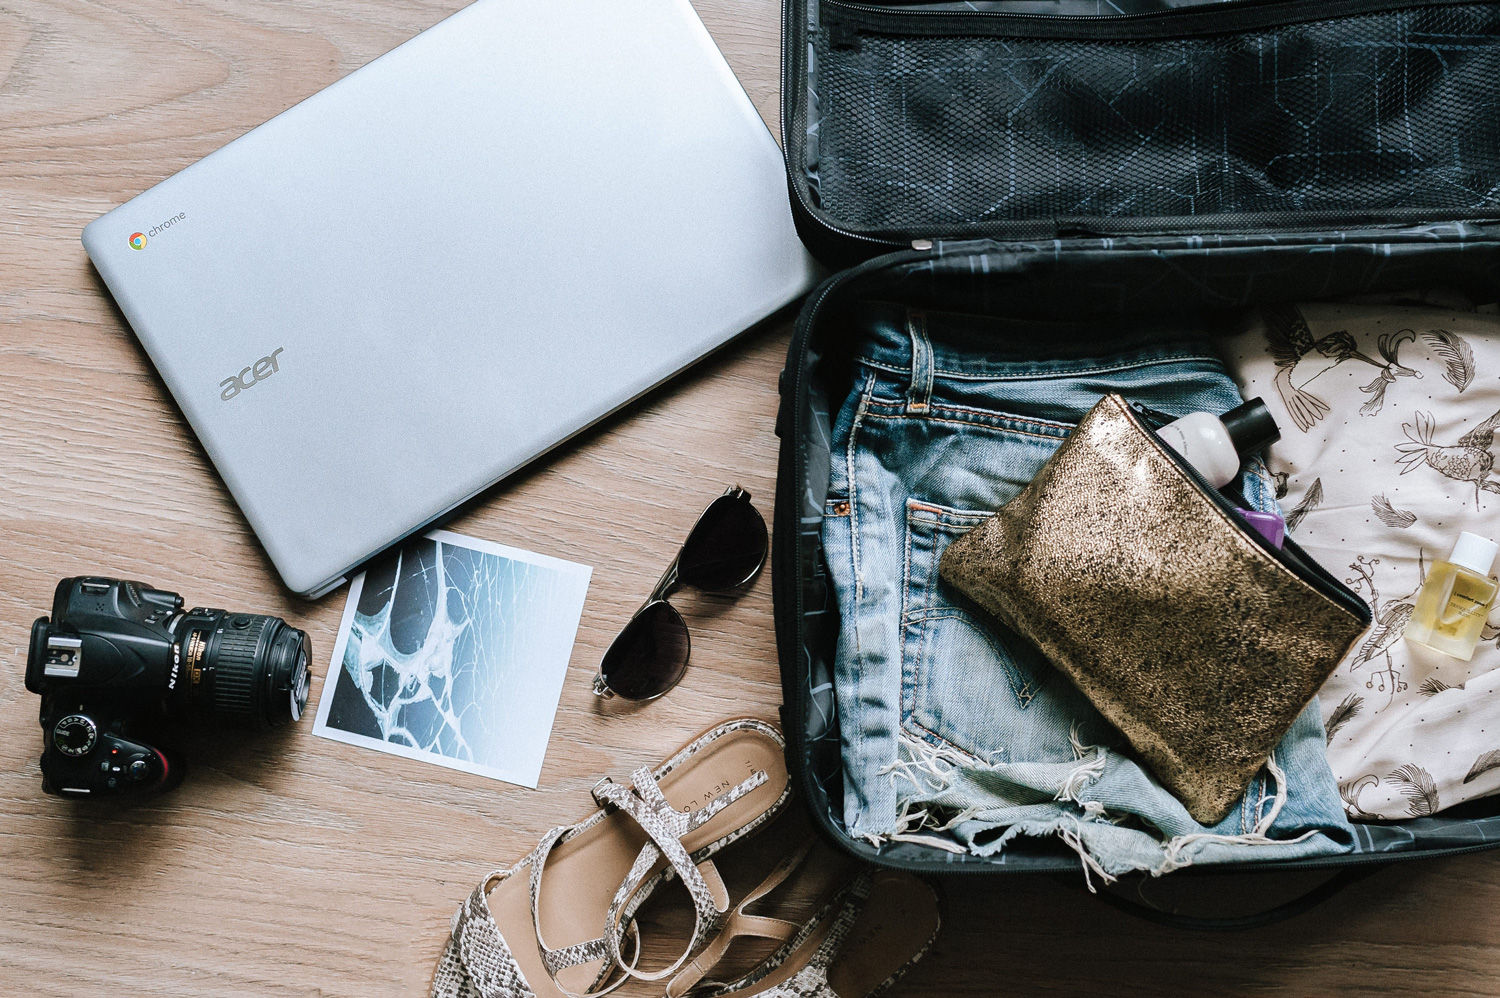 A flatlay of an opened luggage, grey laptop, sandals, sunglasses, a photograph and camera